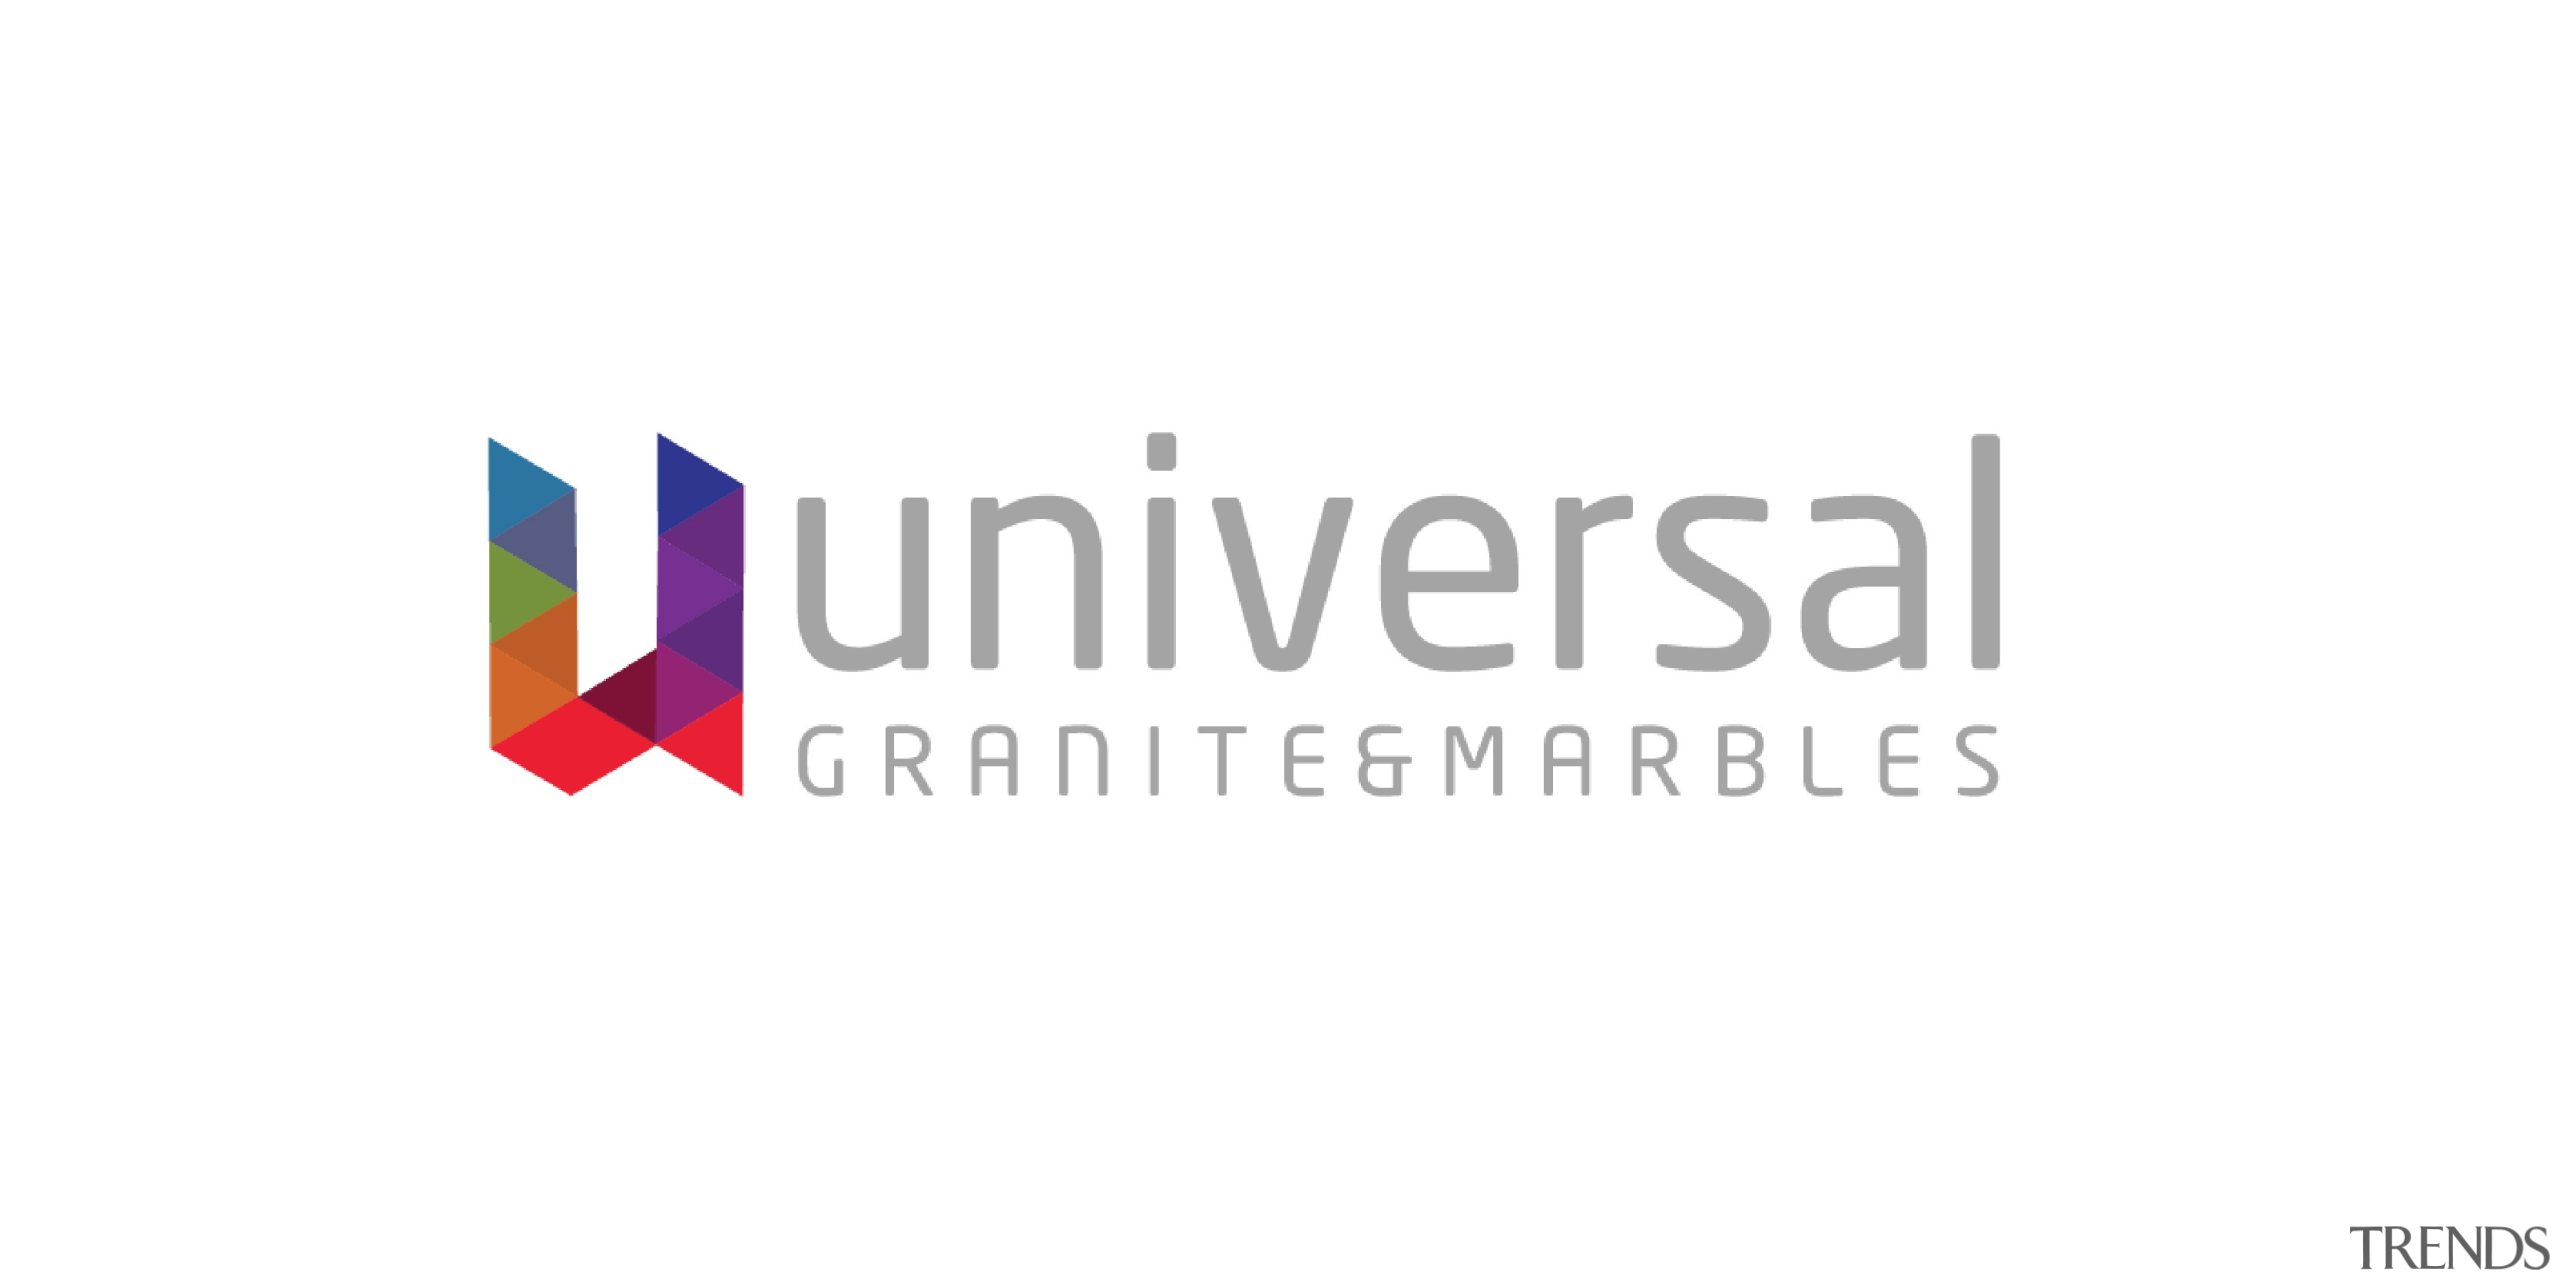 Universal Granite And Marbles Showroom 3 - area area, brand, font, graphics, line, logo, product, text, white